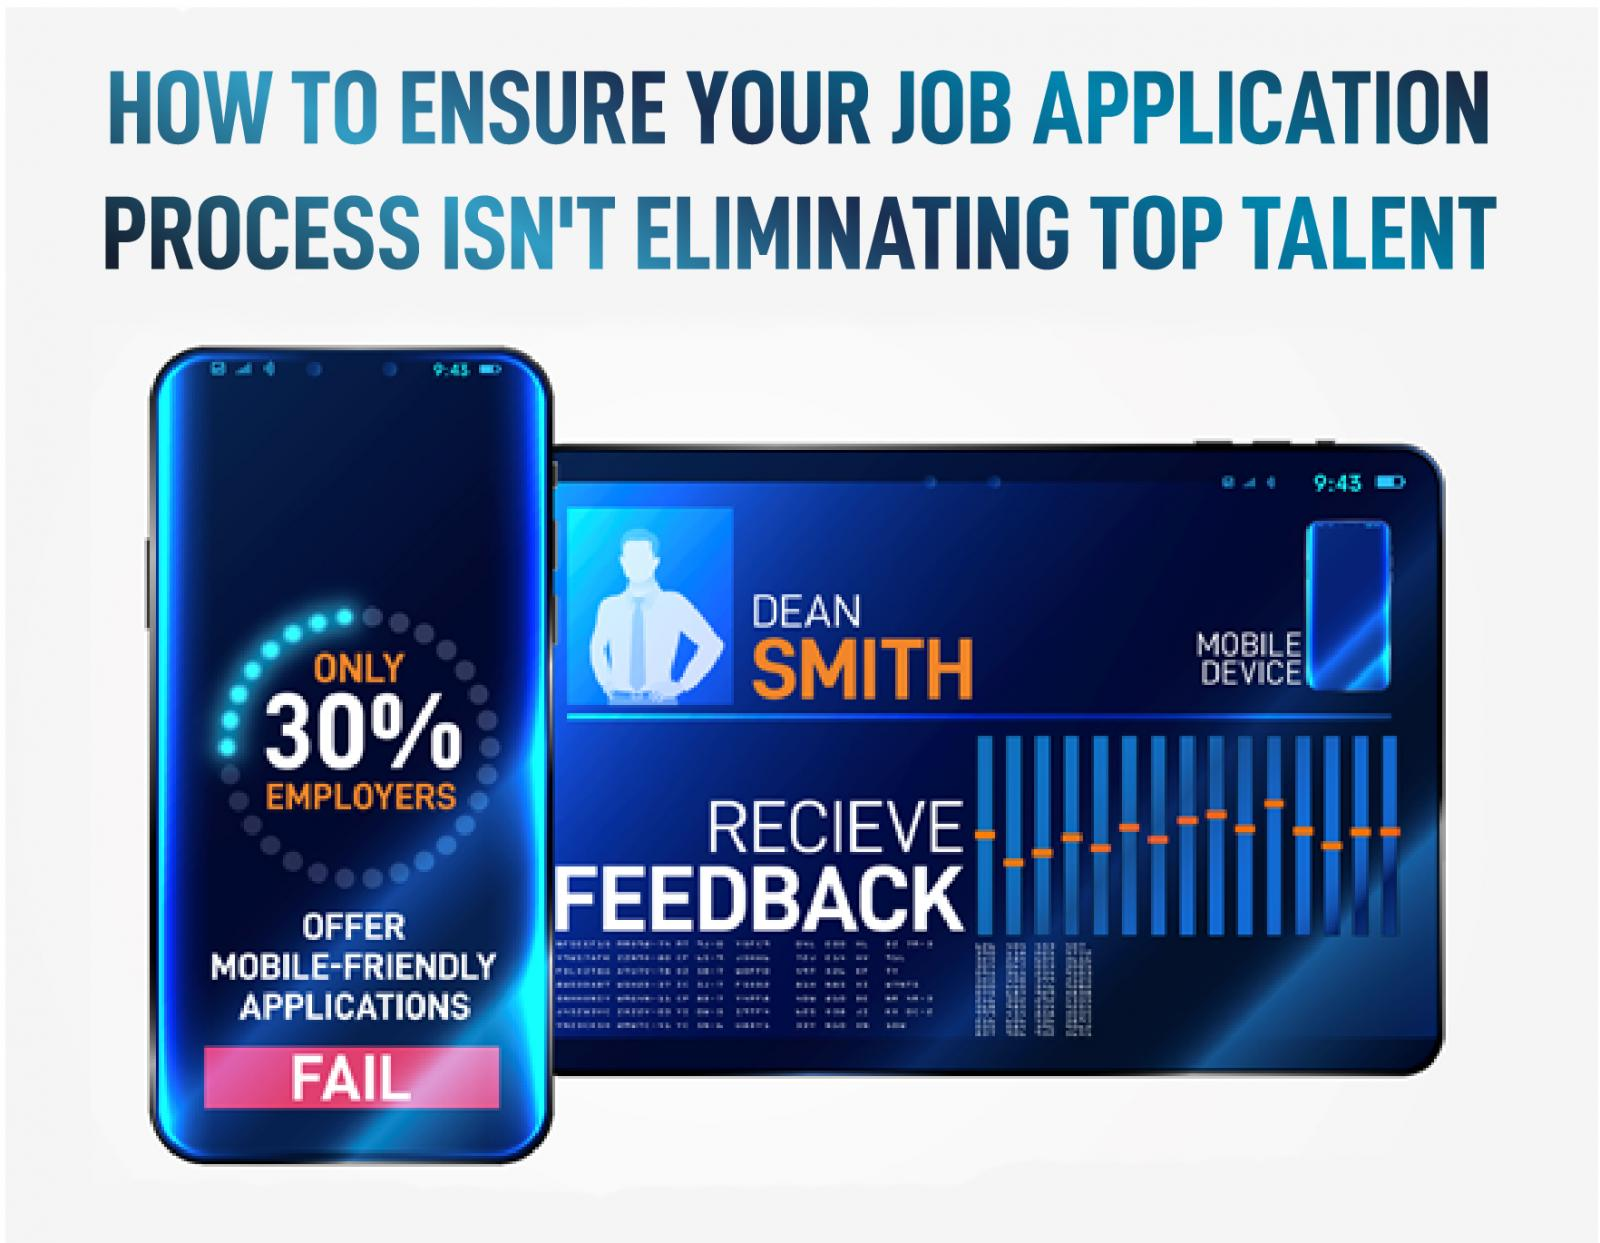 Ensure Your Job Application Process Isn't Eliminating Top Talent